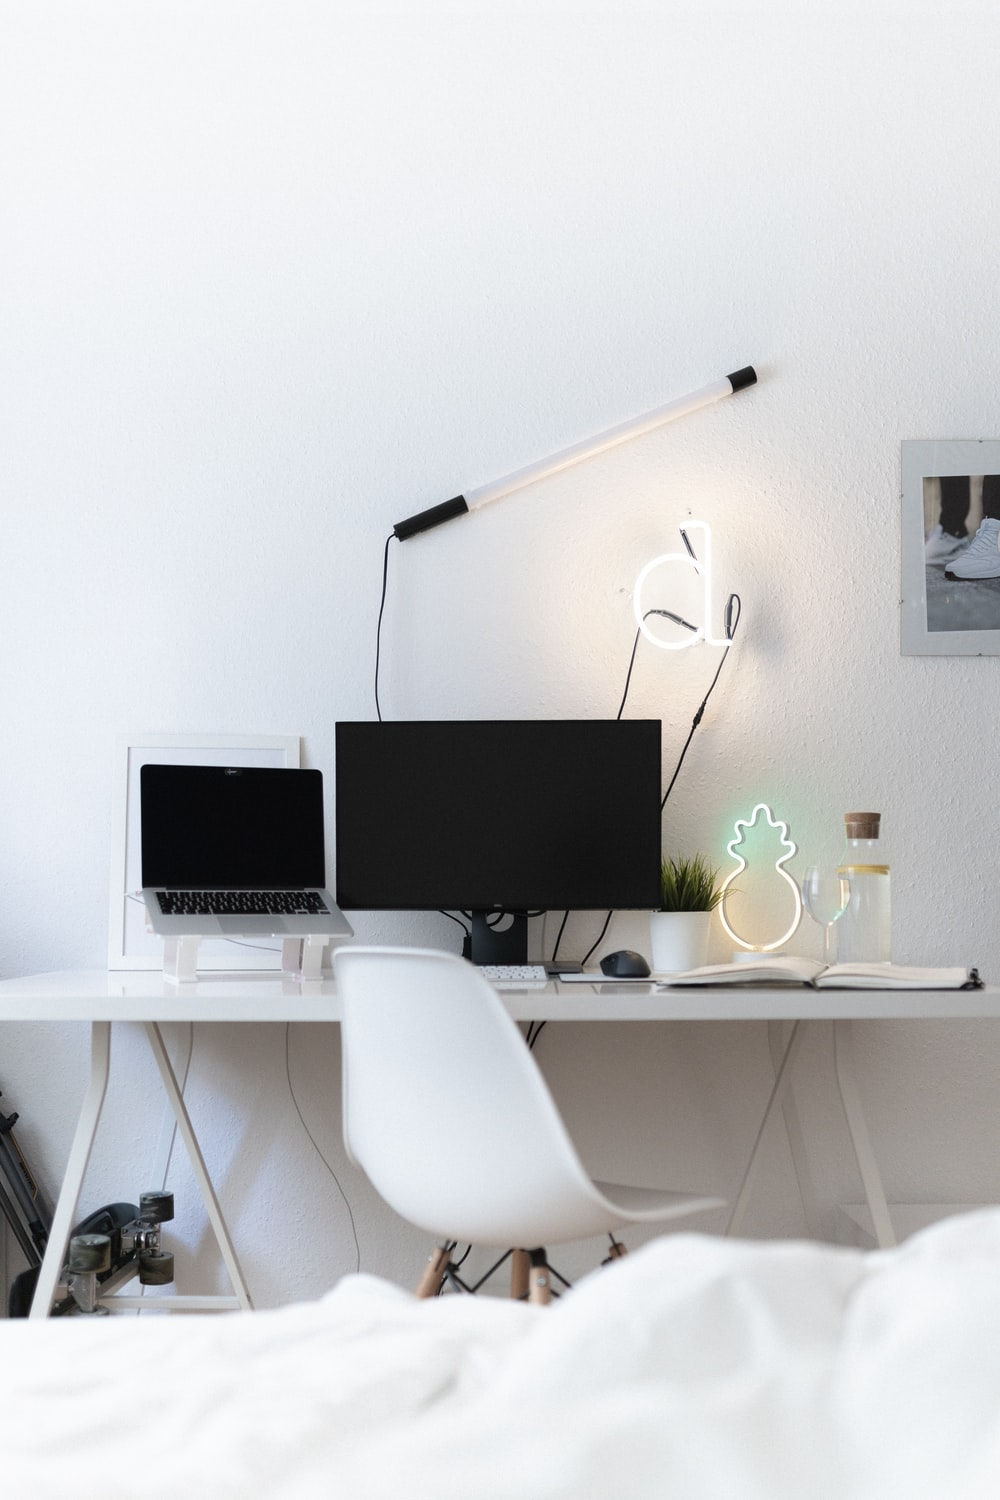 black flat screen computer monitor on white table